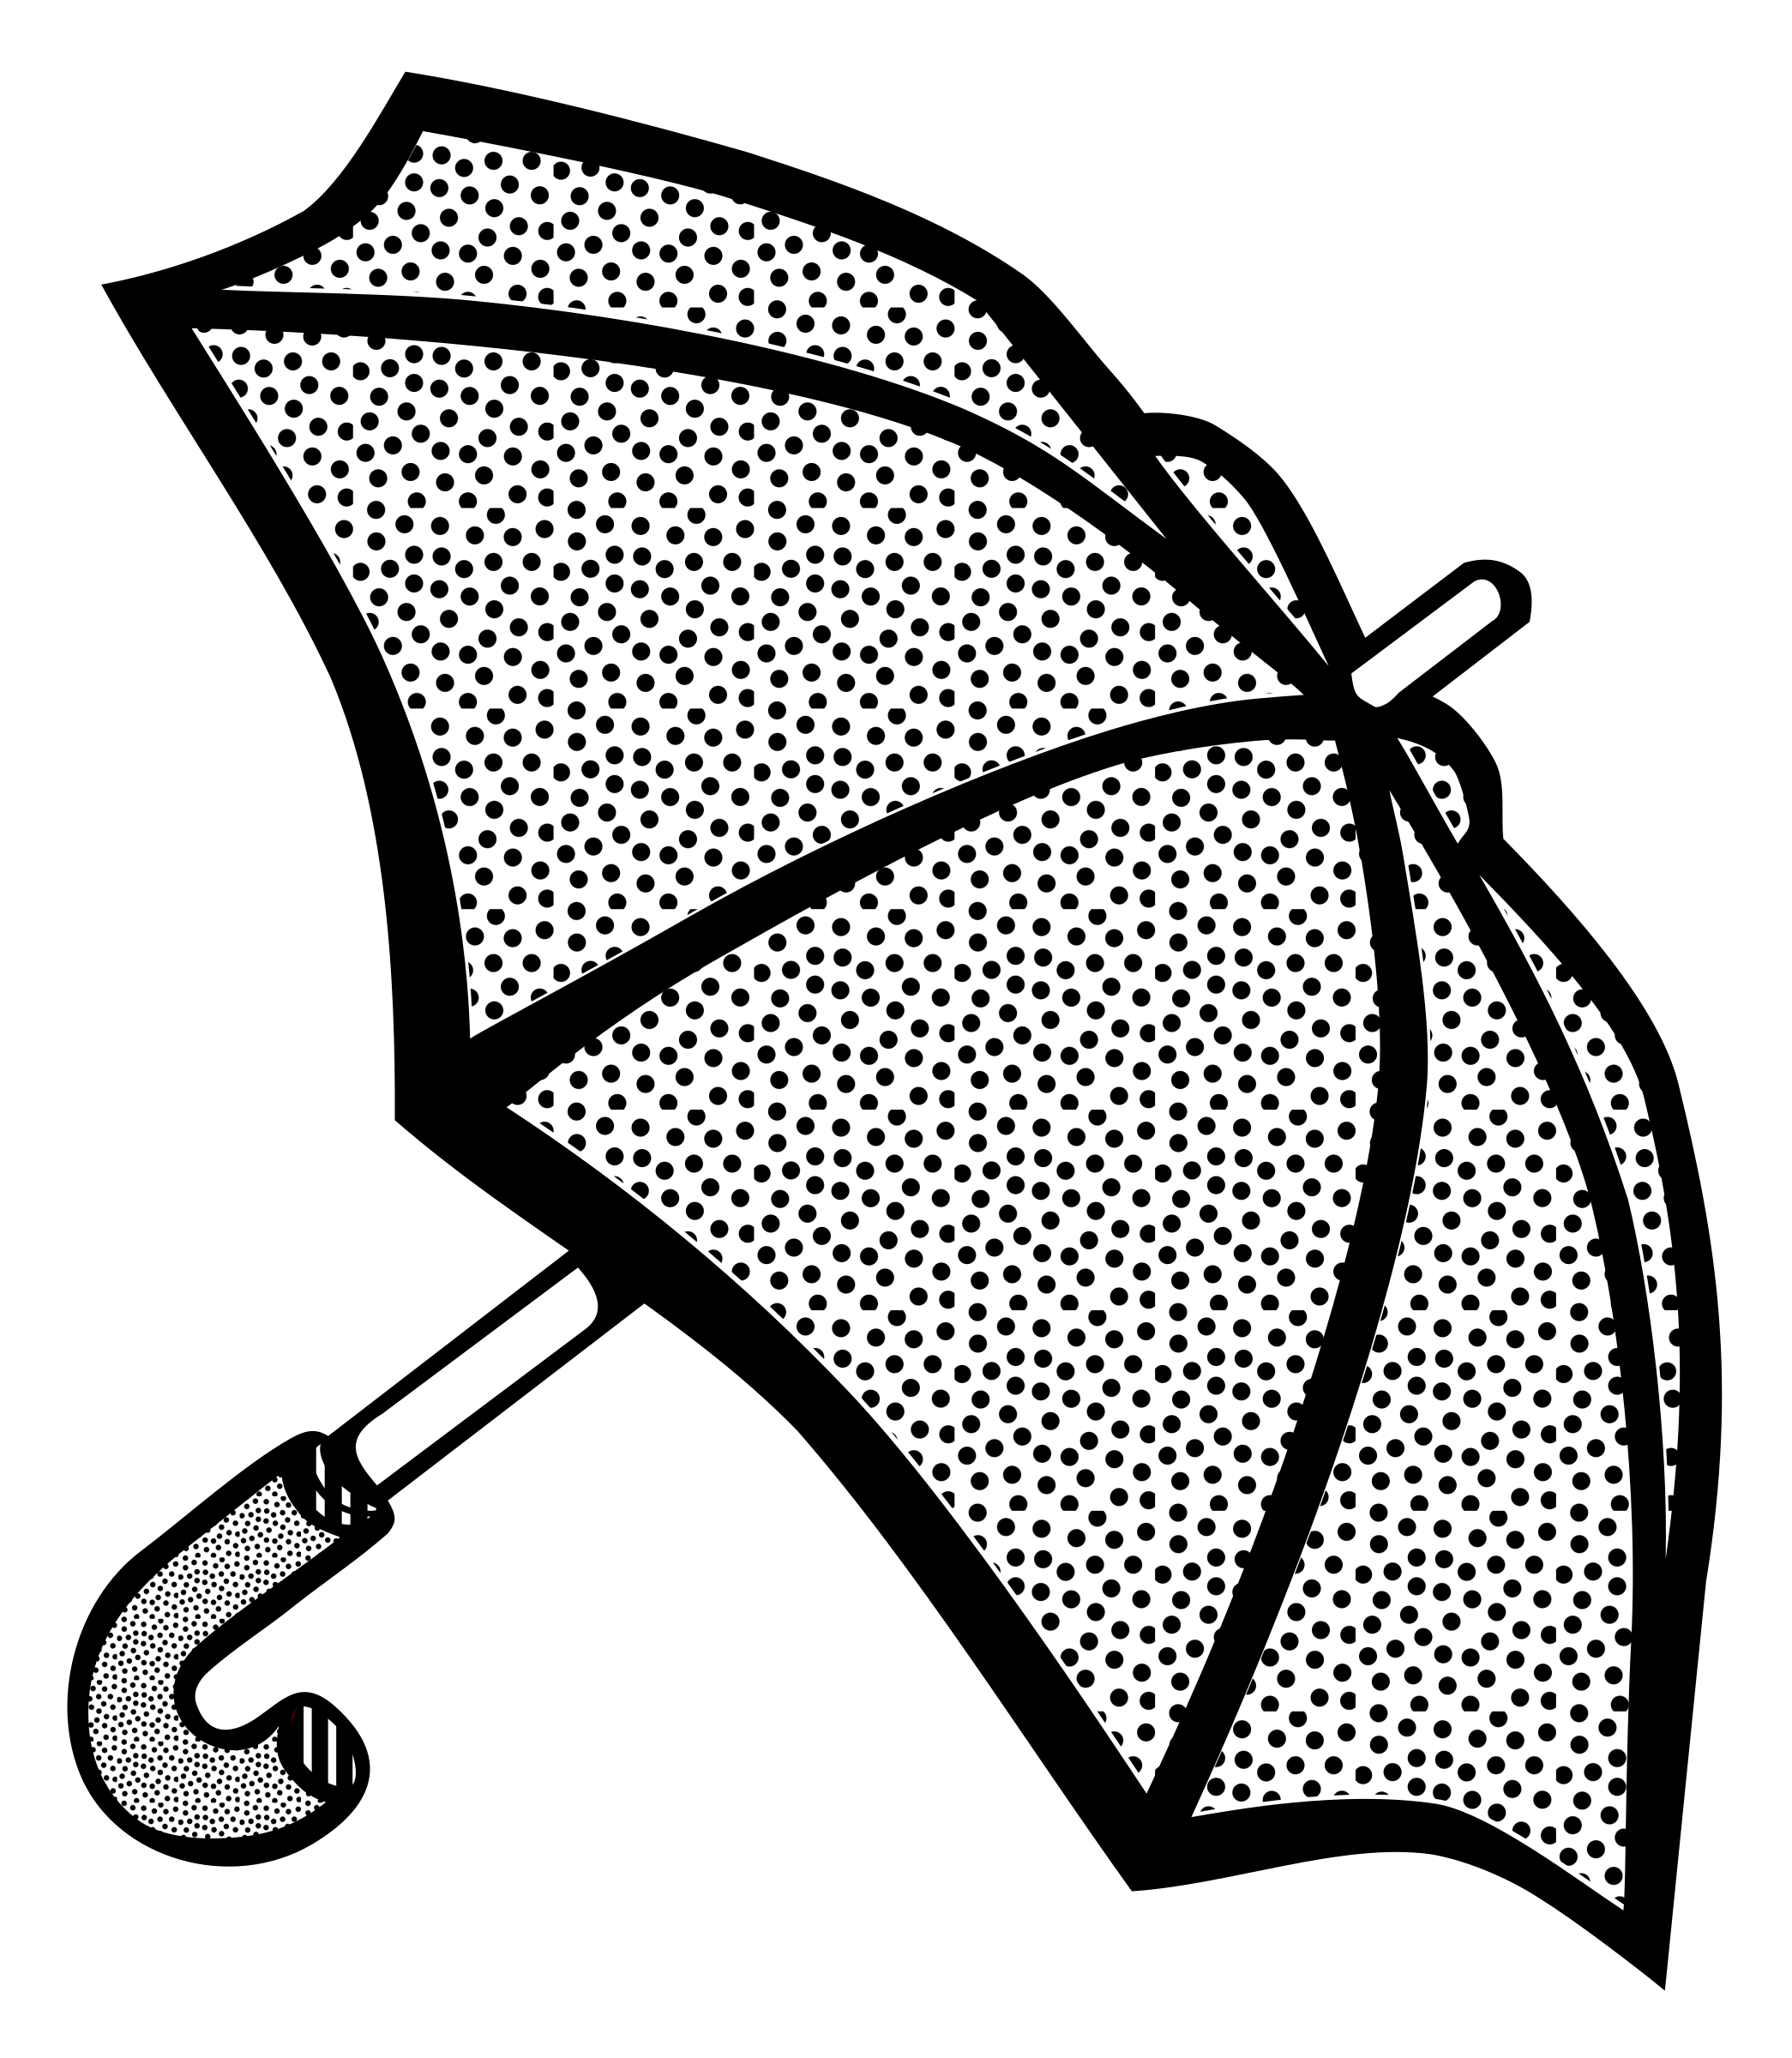 umbrella - lineart by frankes